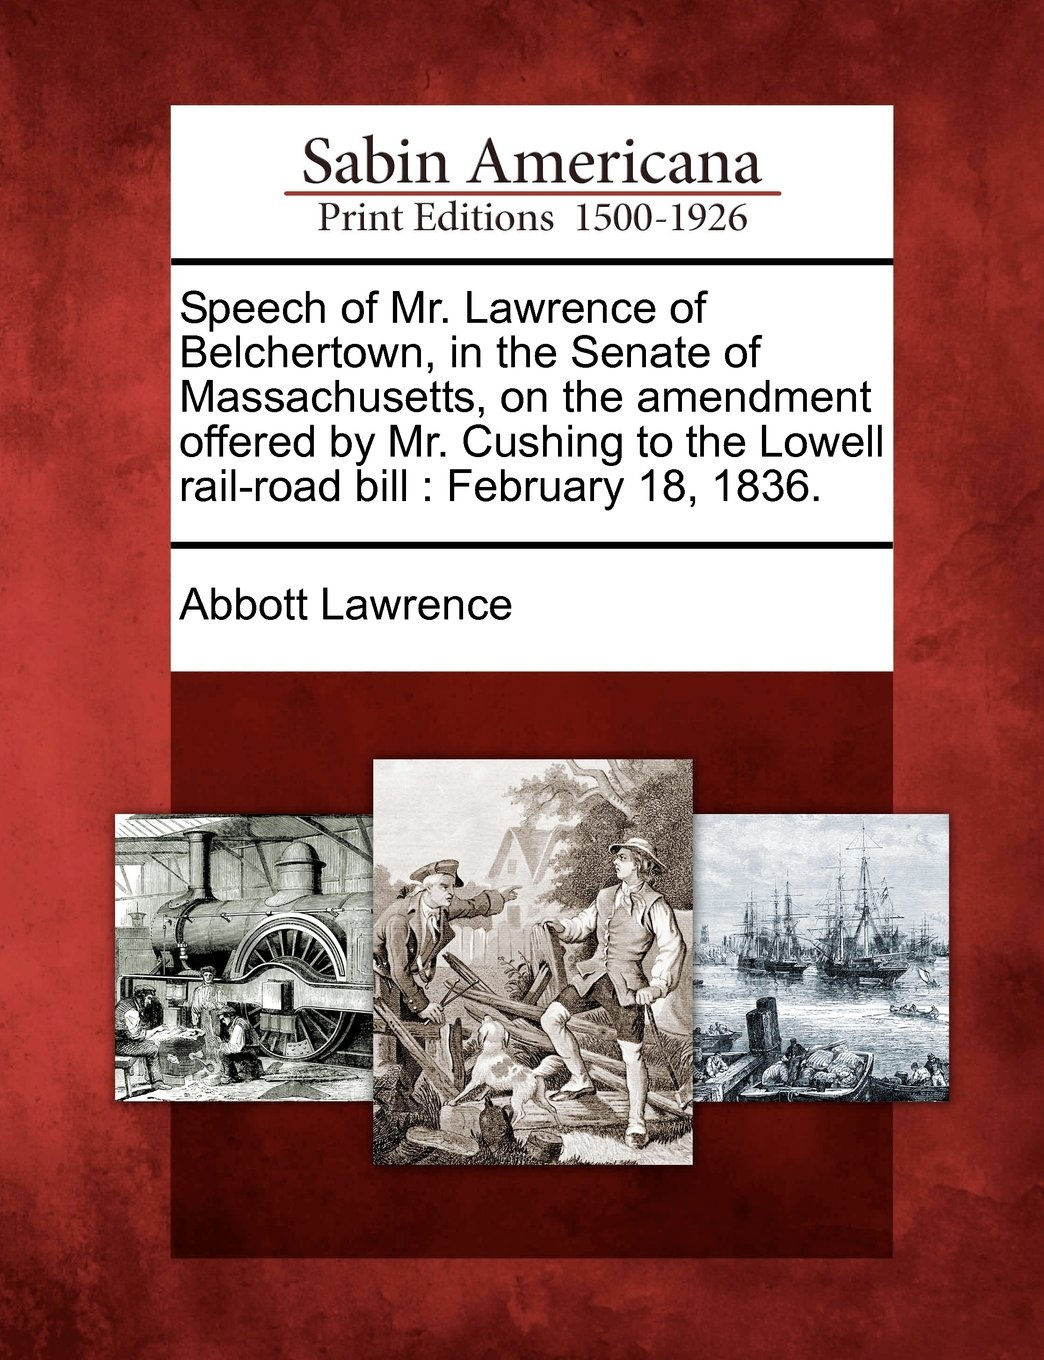 Download Speech of Mr. Lawrence of Belchertown, in the Senate of Massachusetts, on the amendment offered by Mr. Cushing to the Lowell rail-road bill: February 18, 1836. ebook